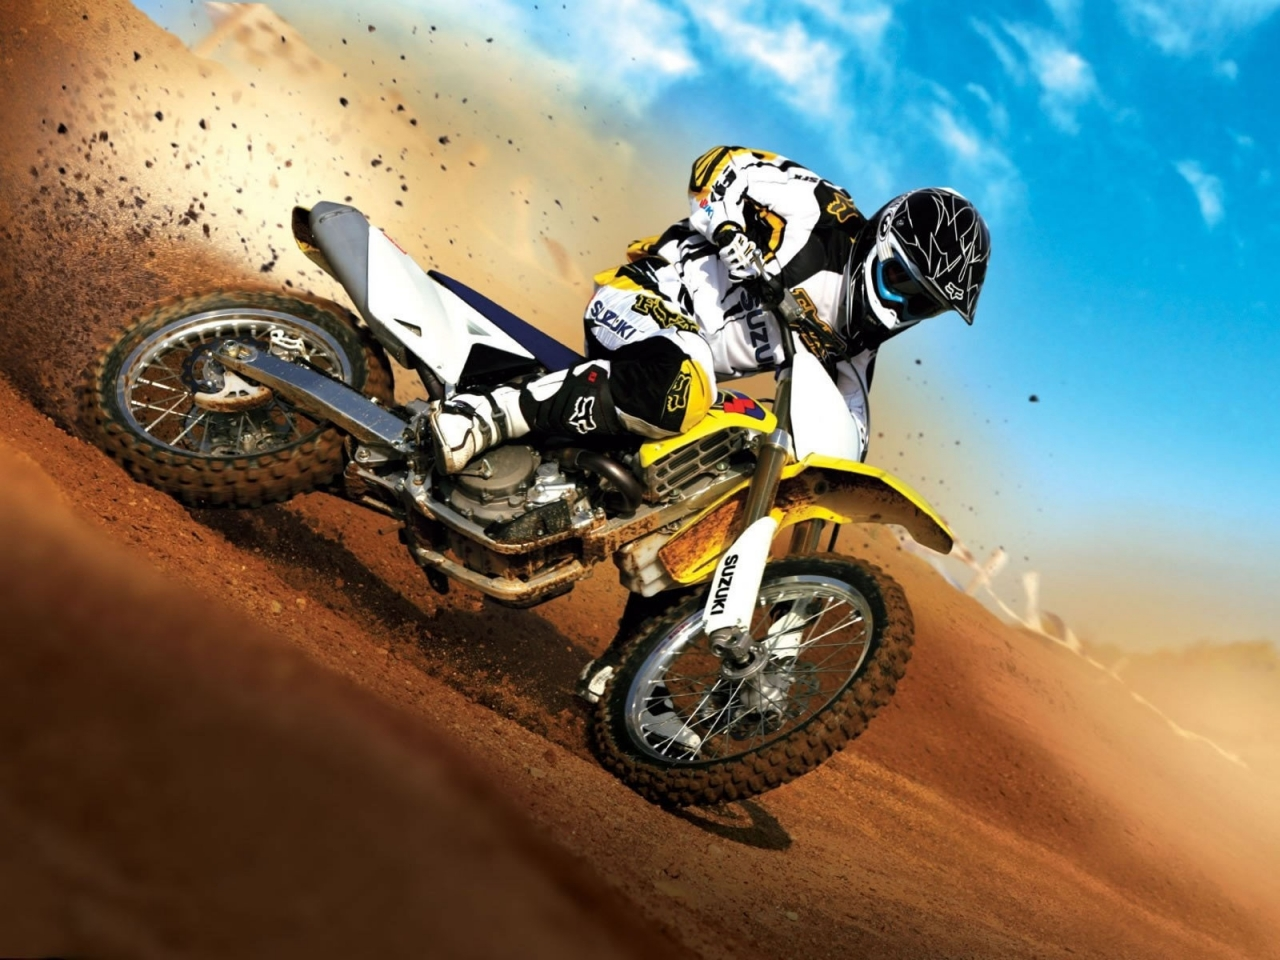 Moto Sports for 1280 x 960 resolution